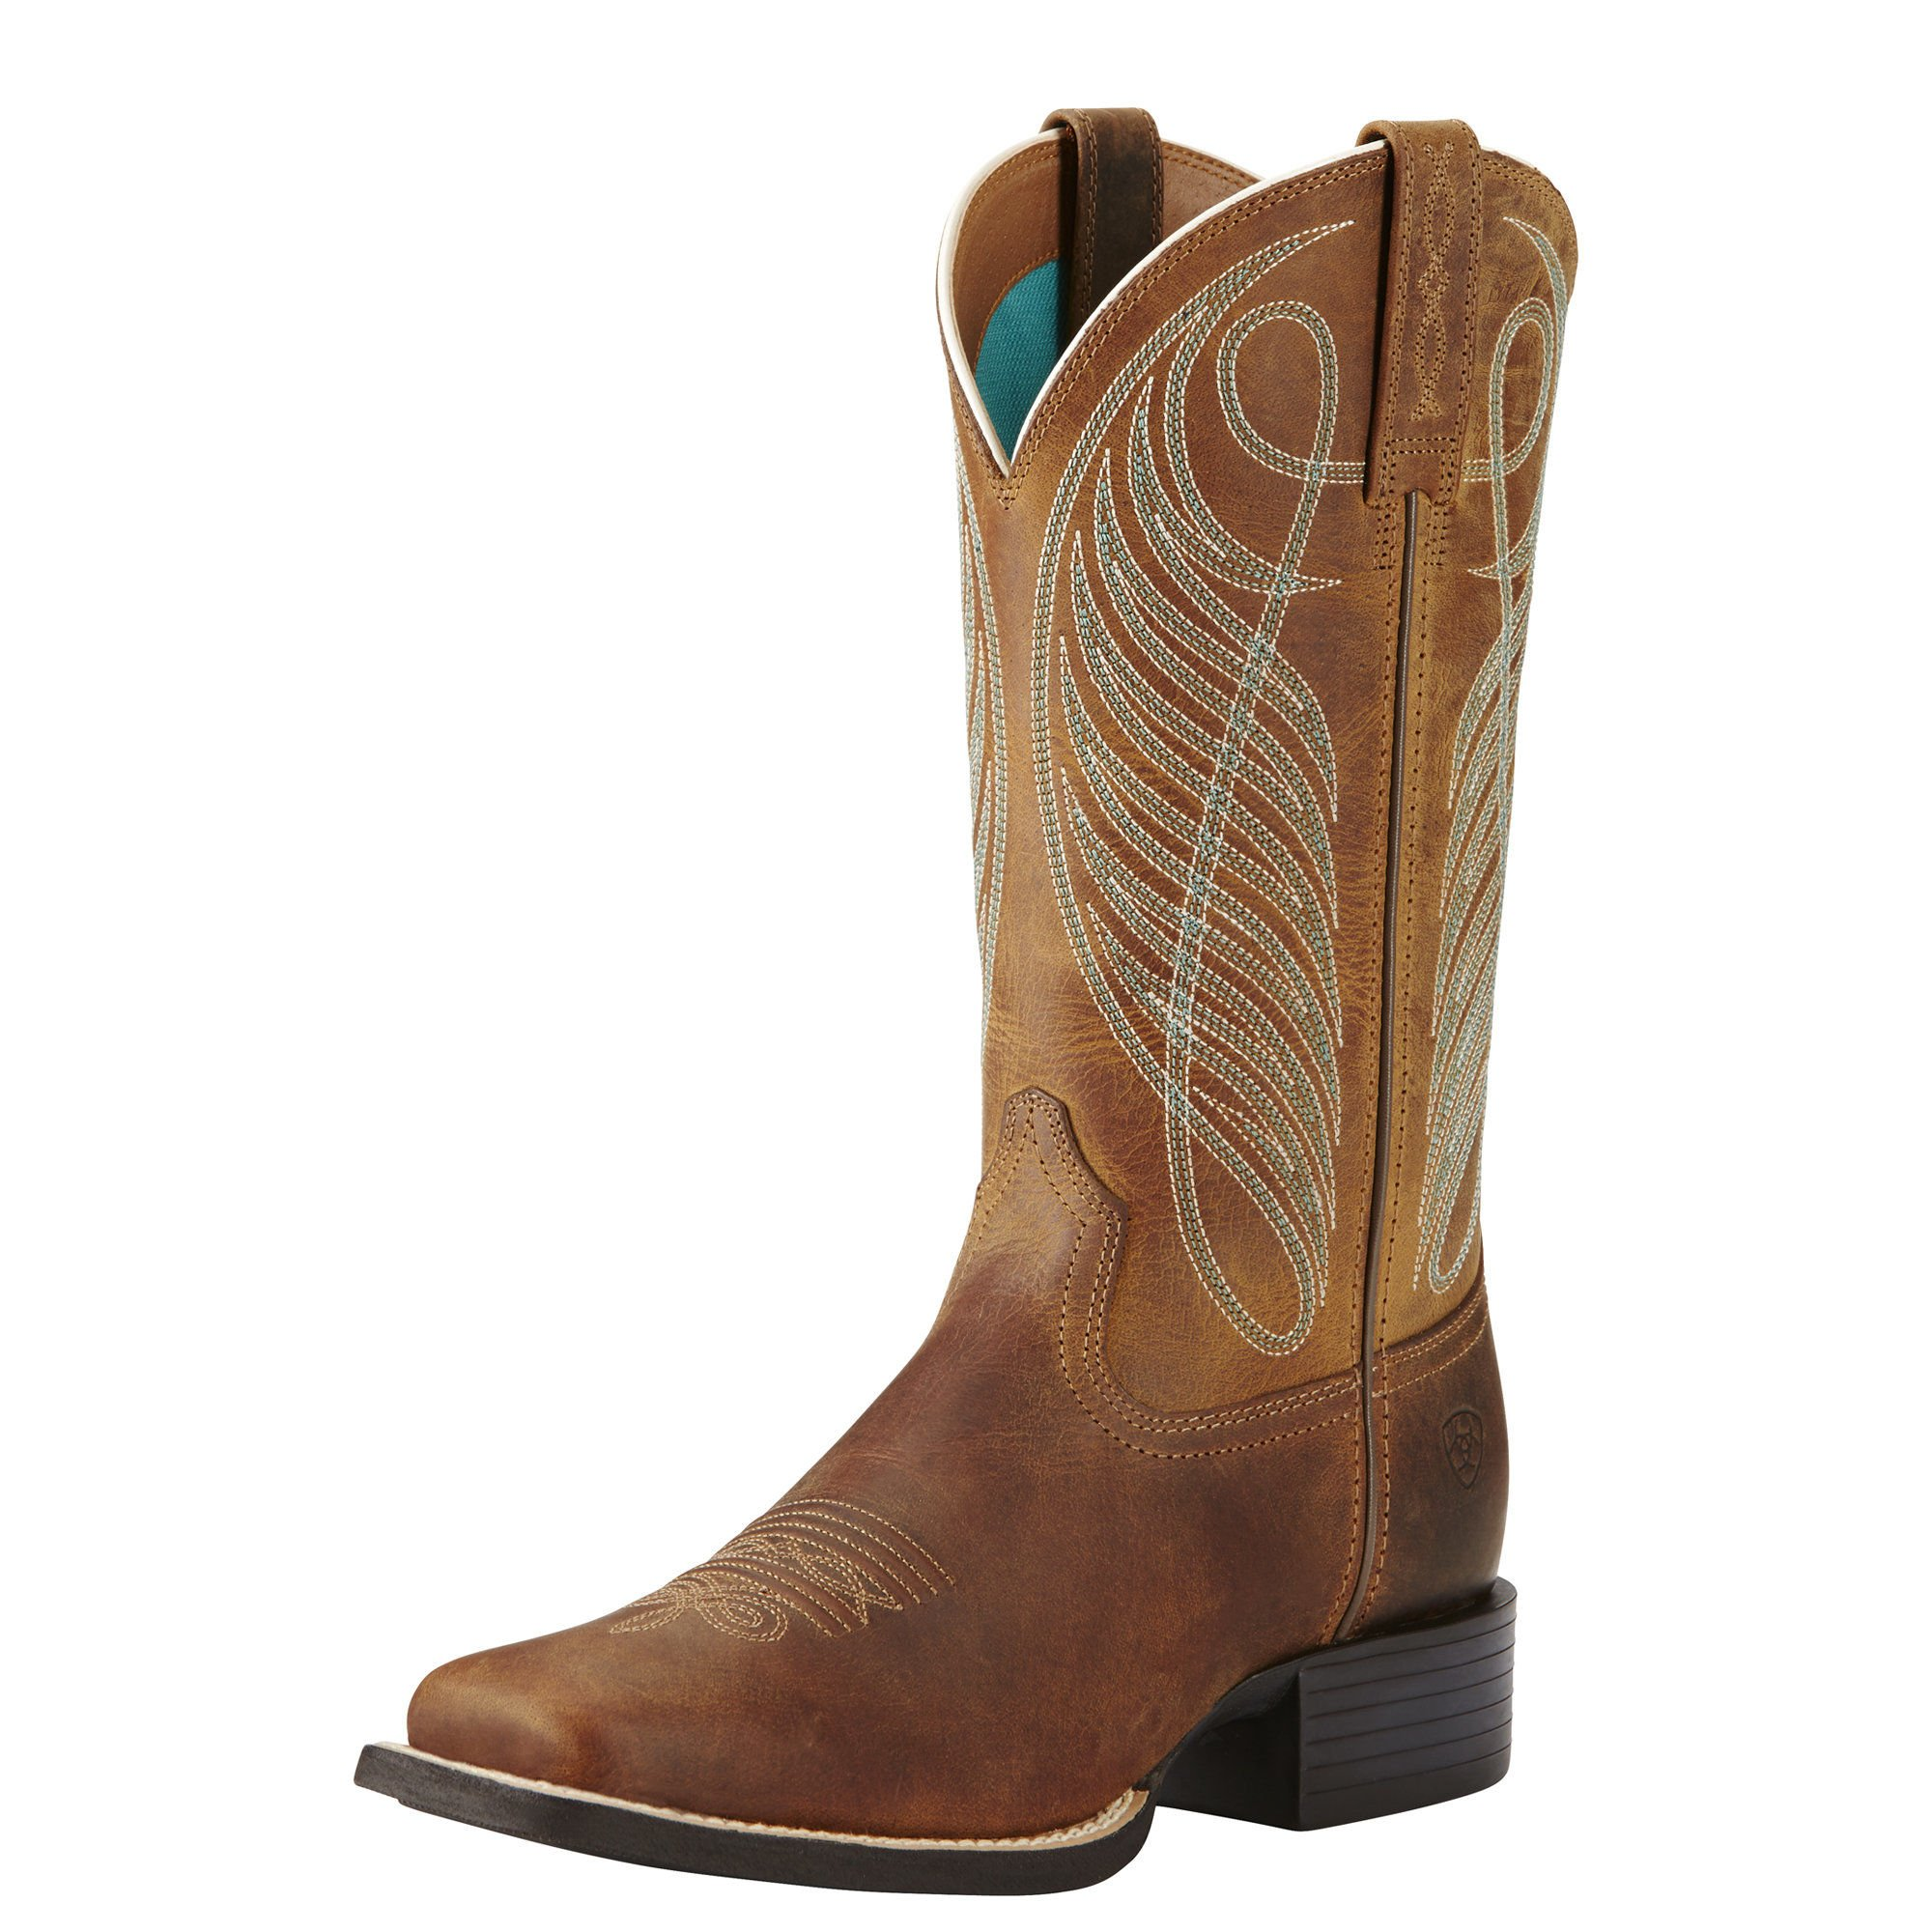 Ariat Women's Round Up Wide Square Toe Western Cowboy Boot, Powder Brown, 9 B US